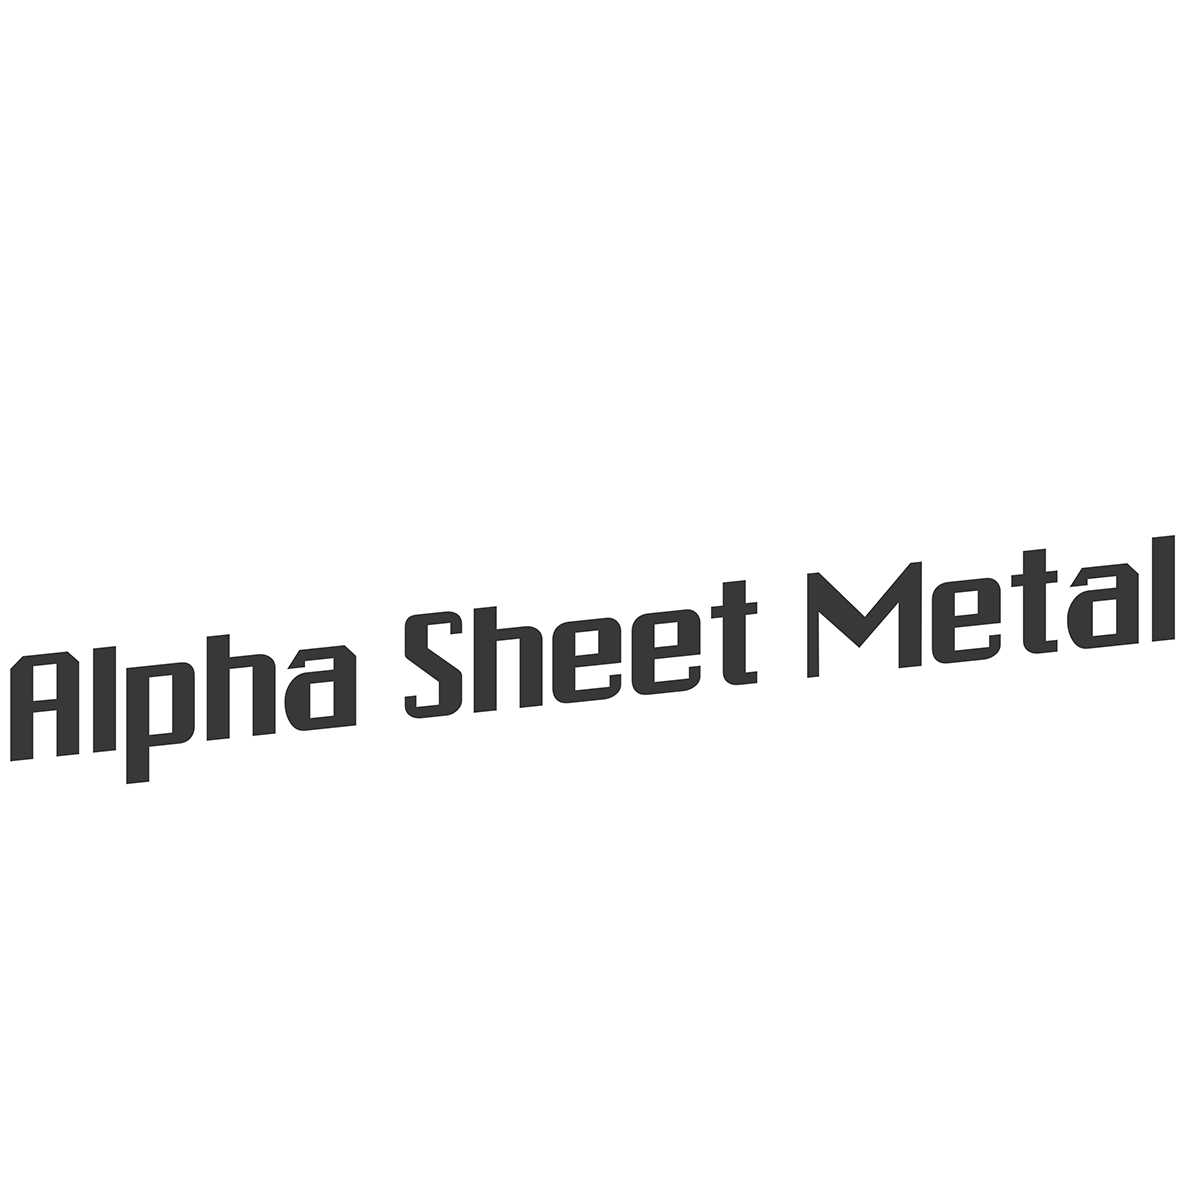 Alpha Sheet Metal, LLC